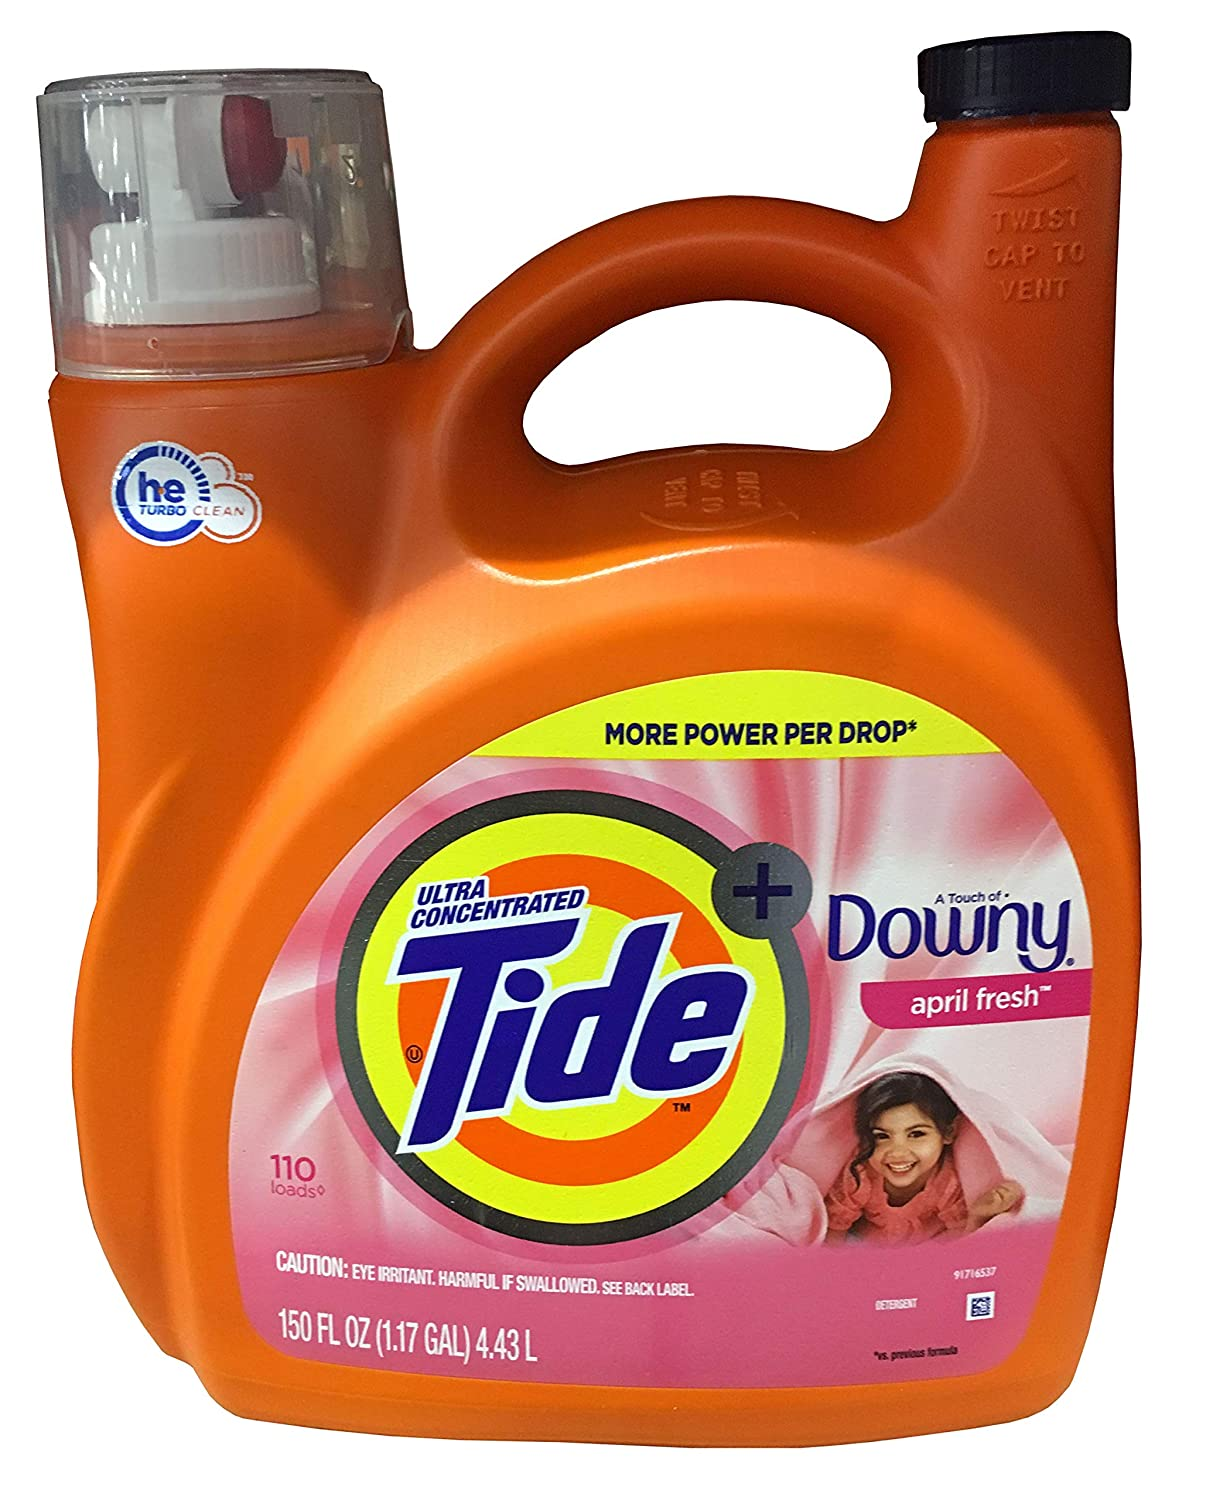 Tide He With Downy 110 loads/ 150 Fl Oz, 150 fl. oz.